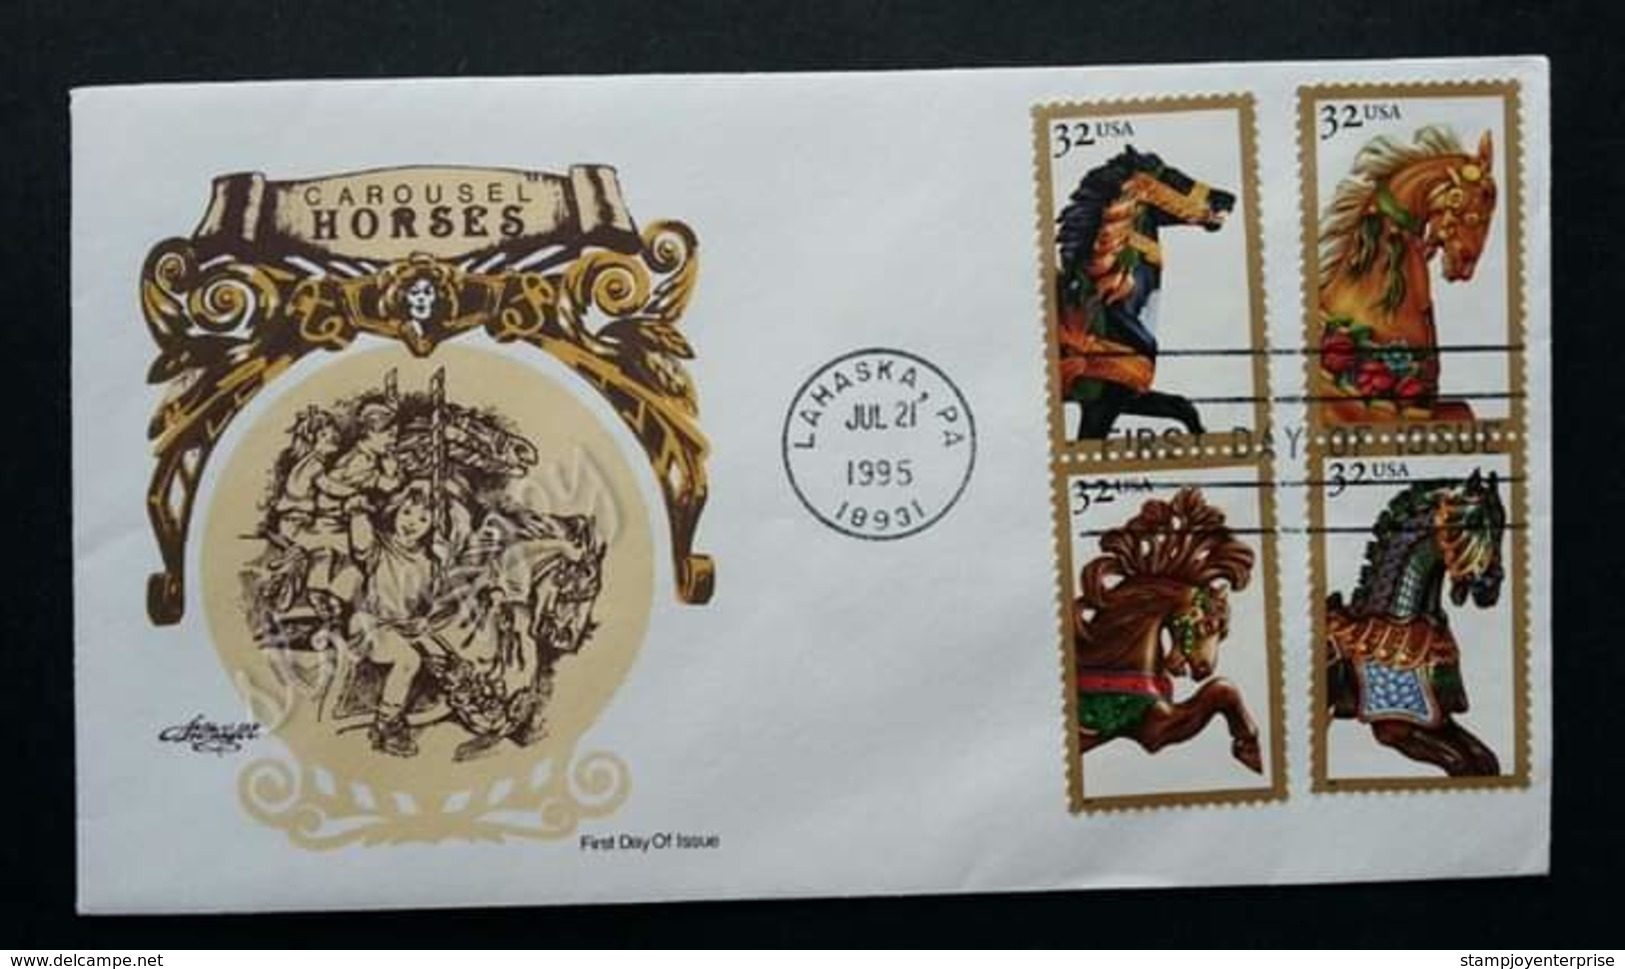 USA United States Carousel Horse 1995 (stamp FDC) - Covers & Documents